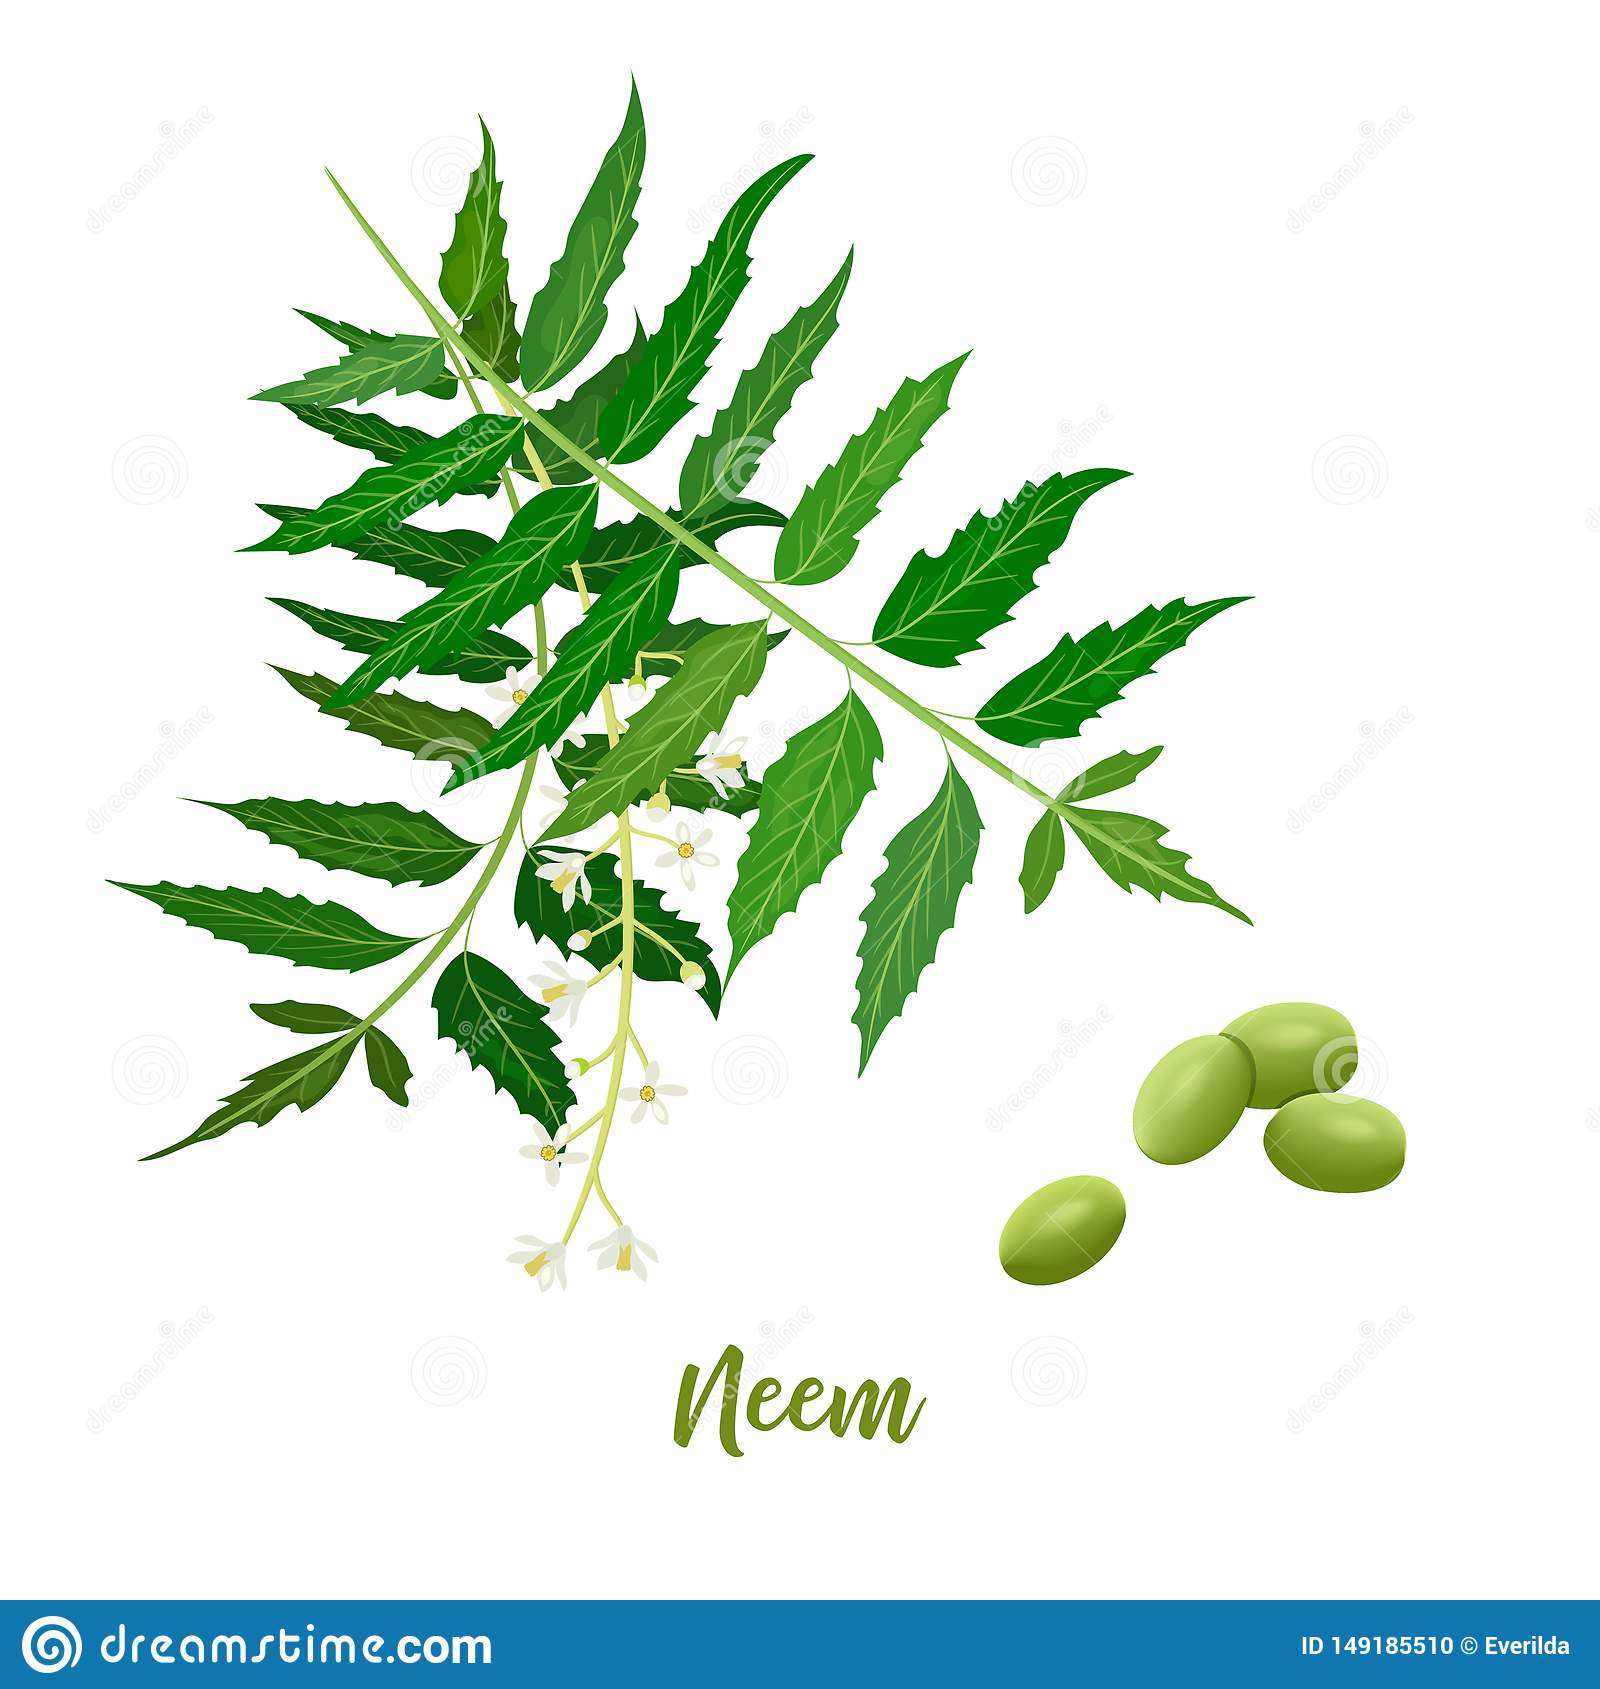 Neem leaf branch, flowers and pods. for natural cosmetics, health care products, aromatherapy, oils